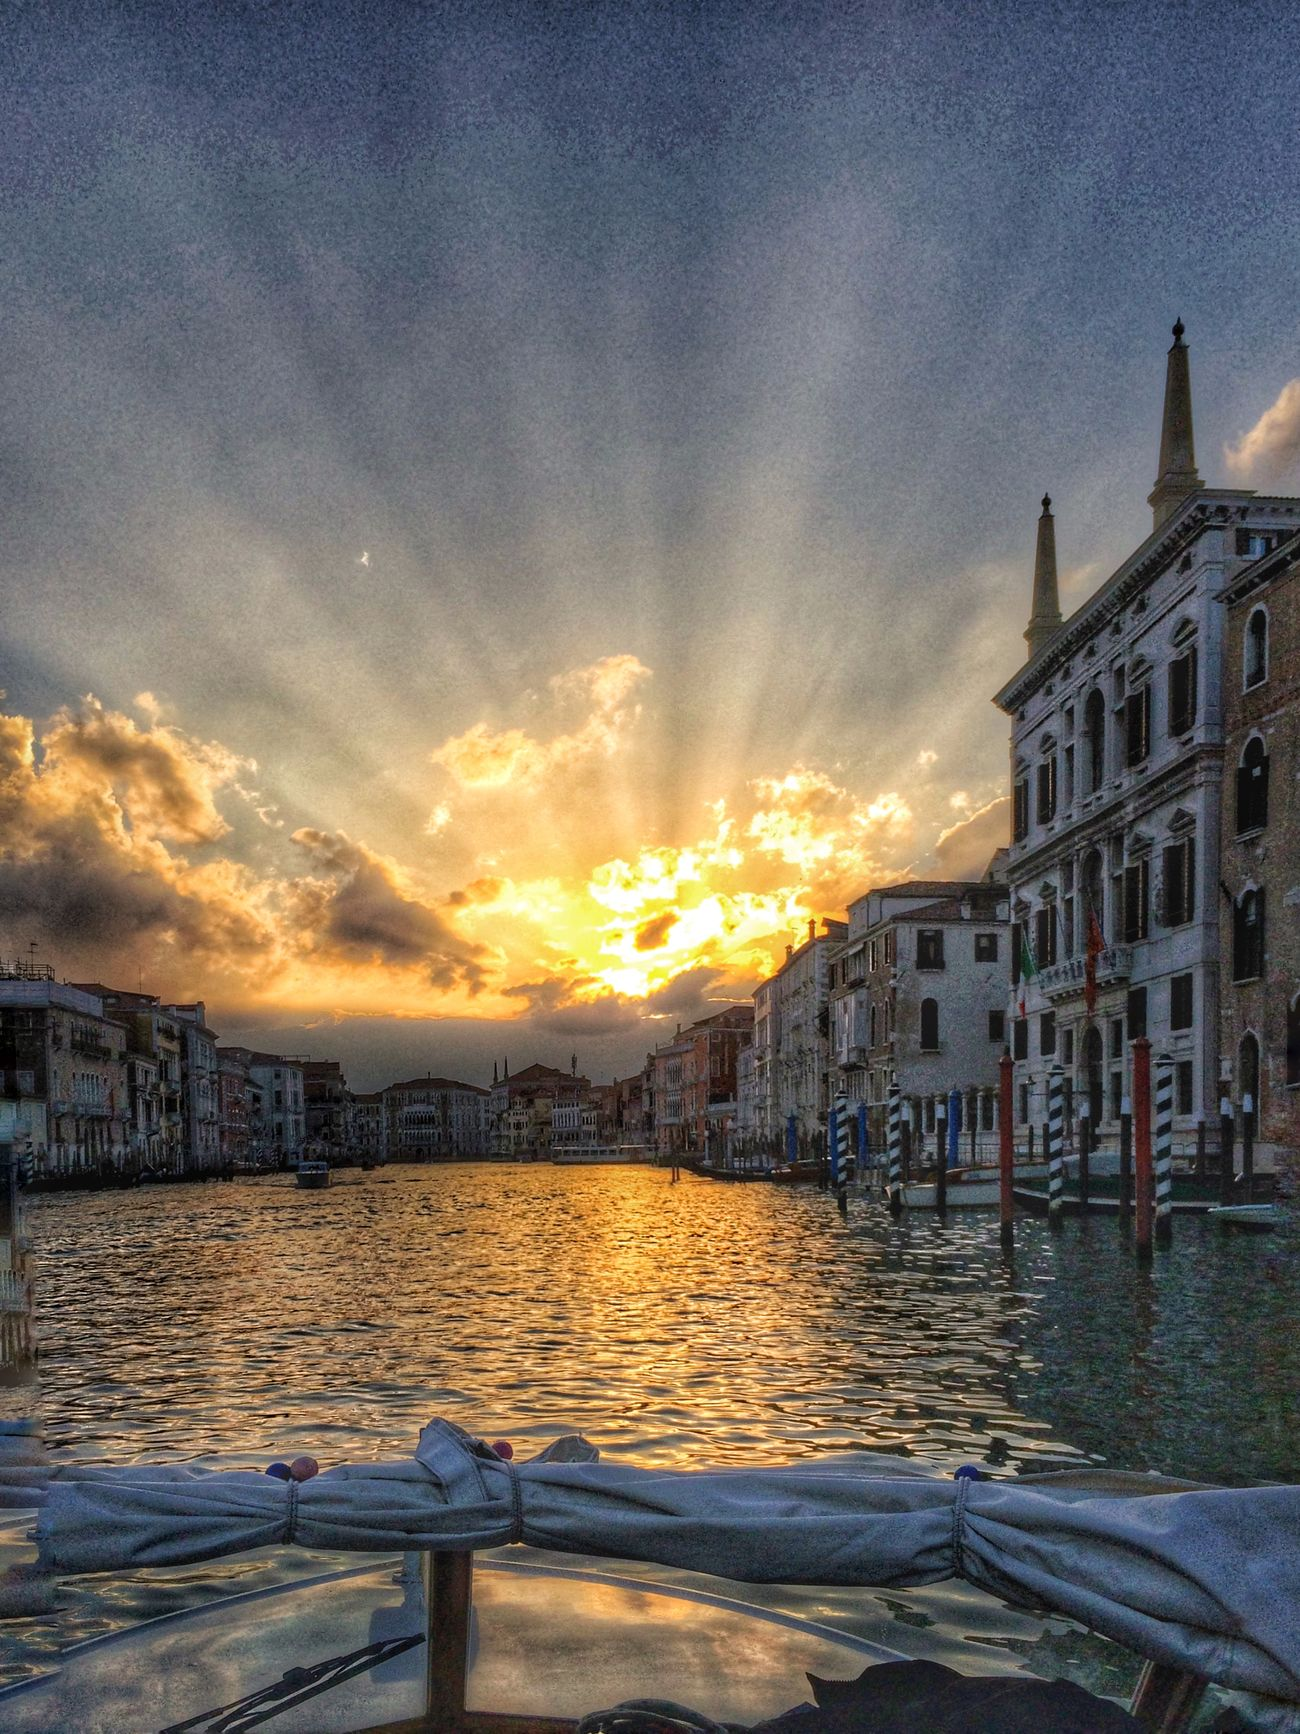 Landscape_photography Iphoneacademy Iphone5s Photography SightseeingVenice Final Edit